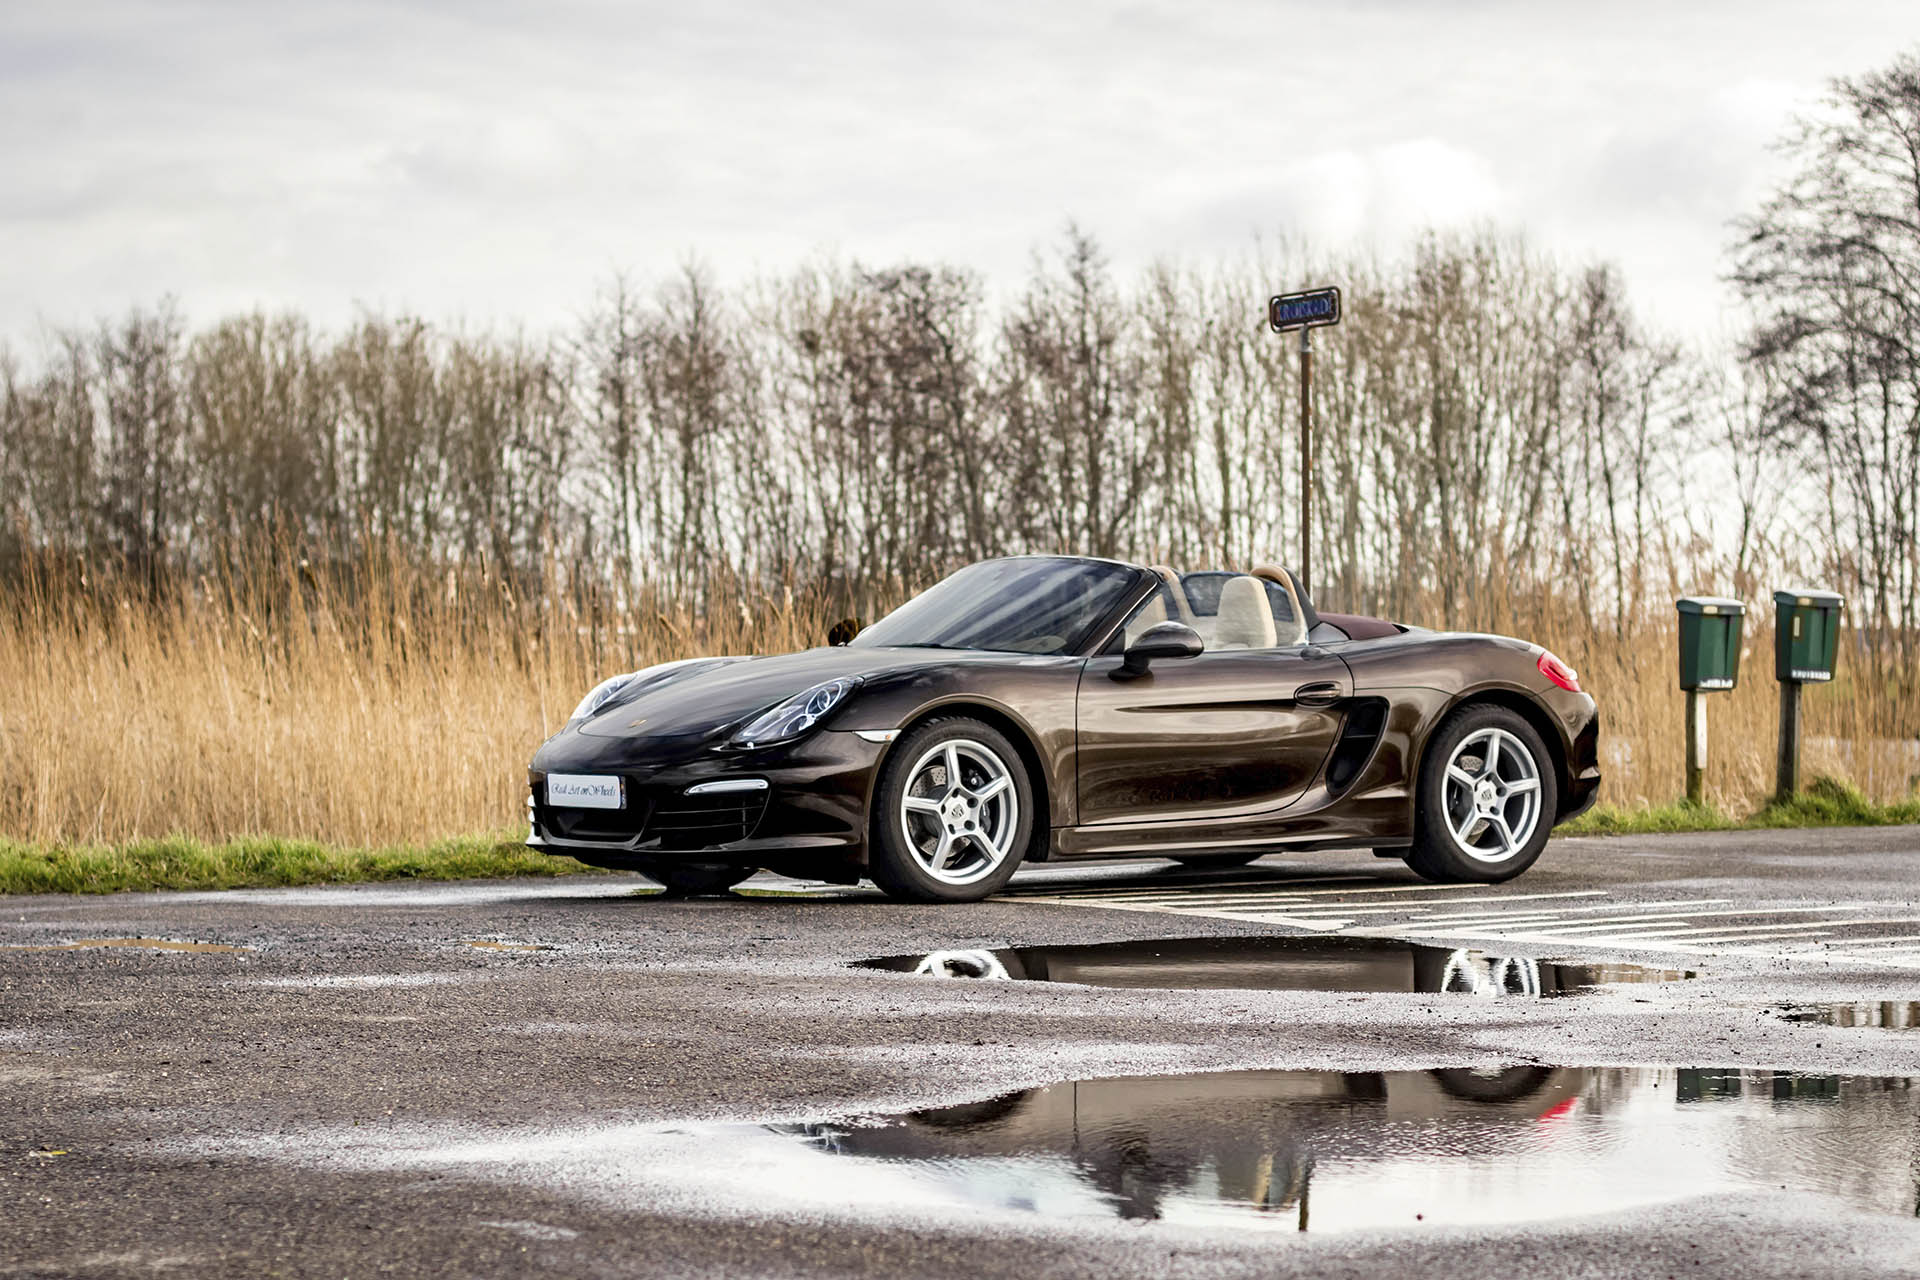 Real Art On Wheels   The Collection - Porsche Boxster